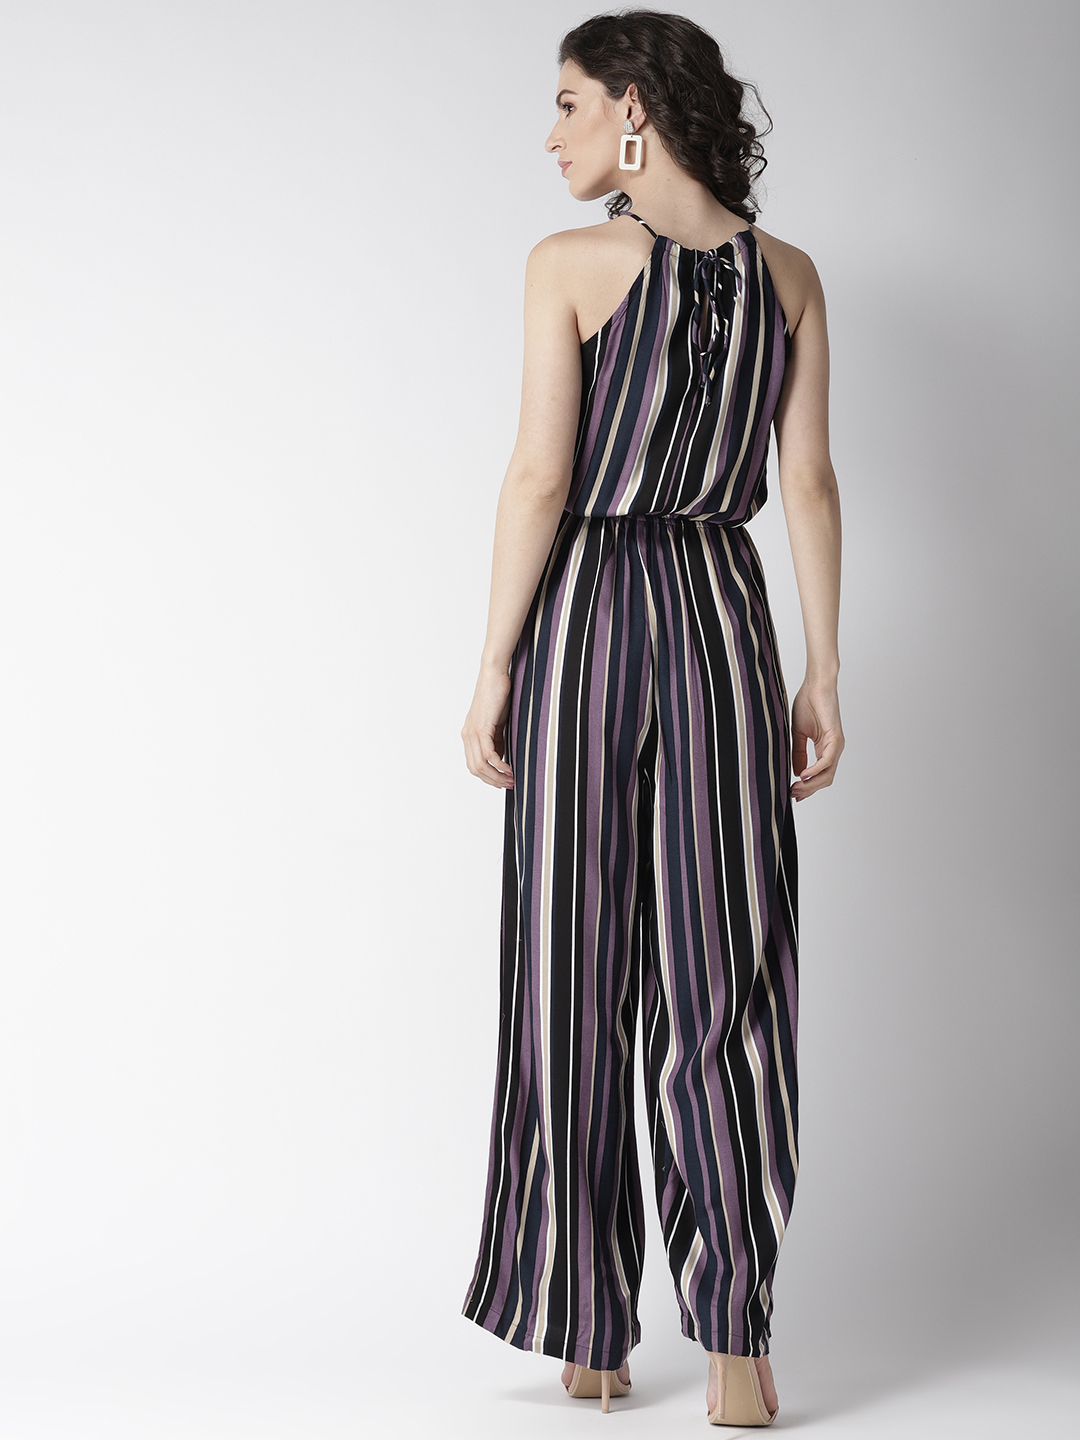 Jumpsuits-Living On The Line Stripe Jumpsuit3